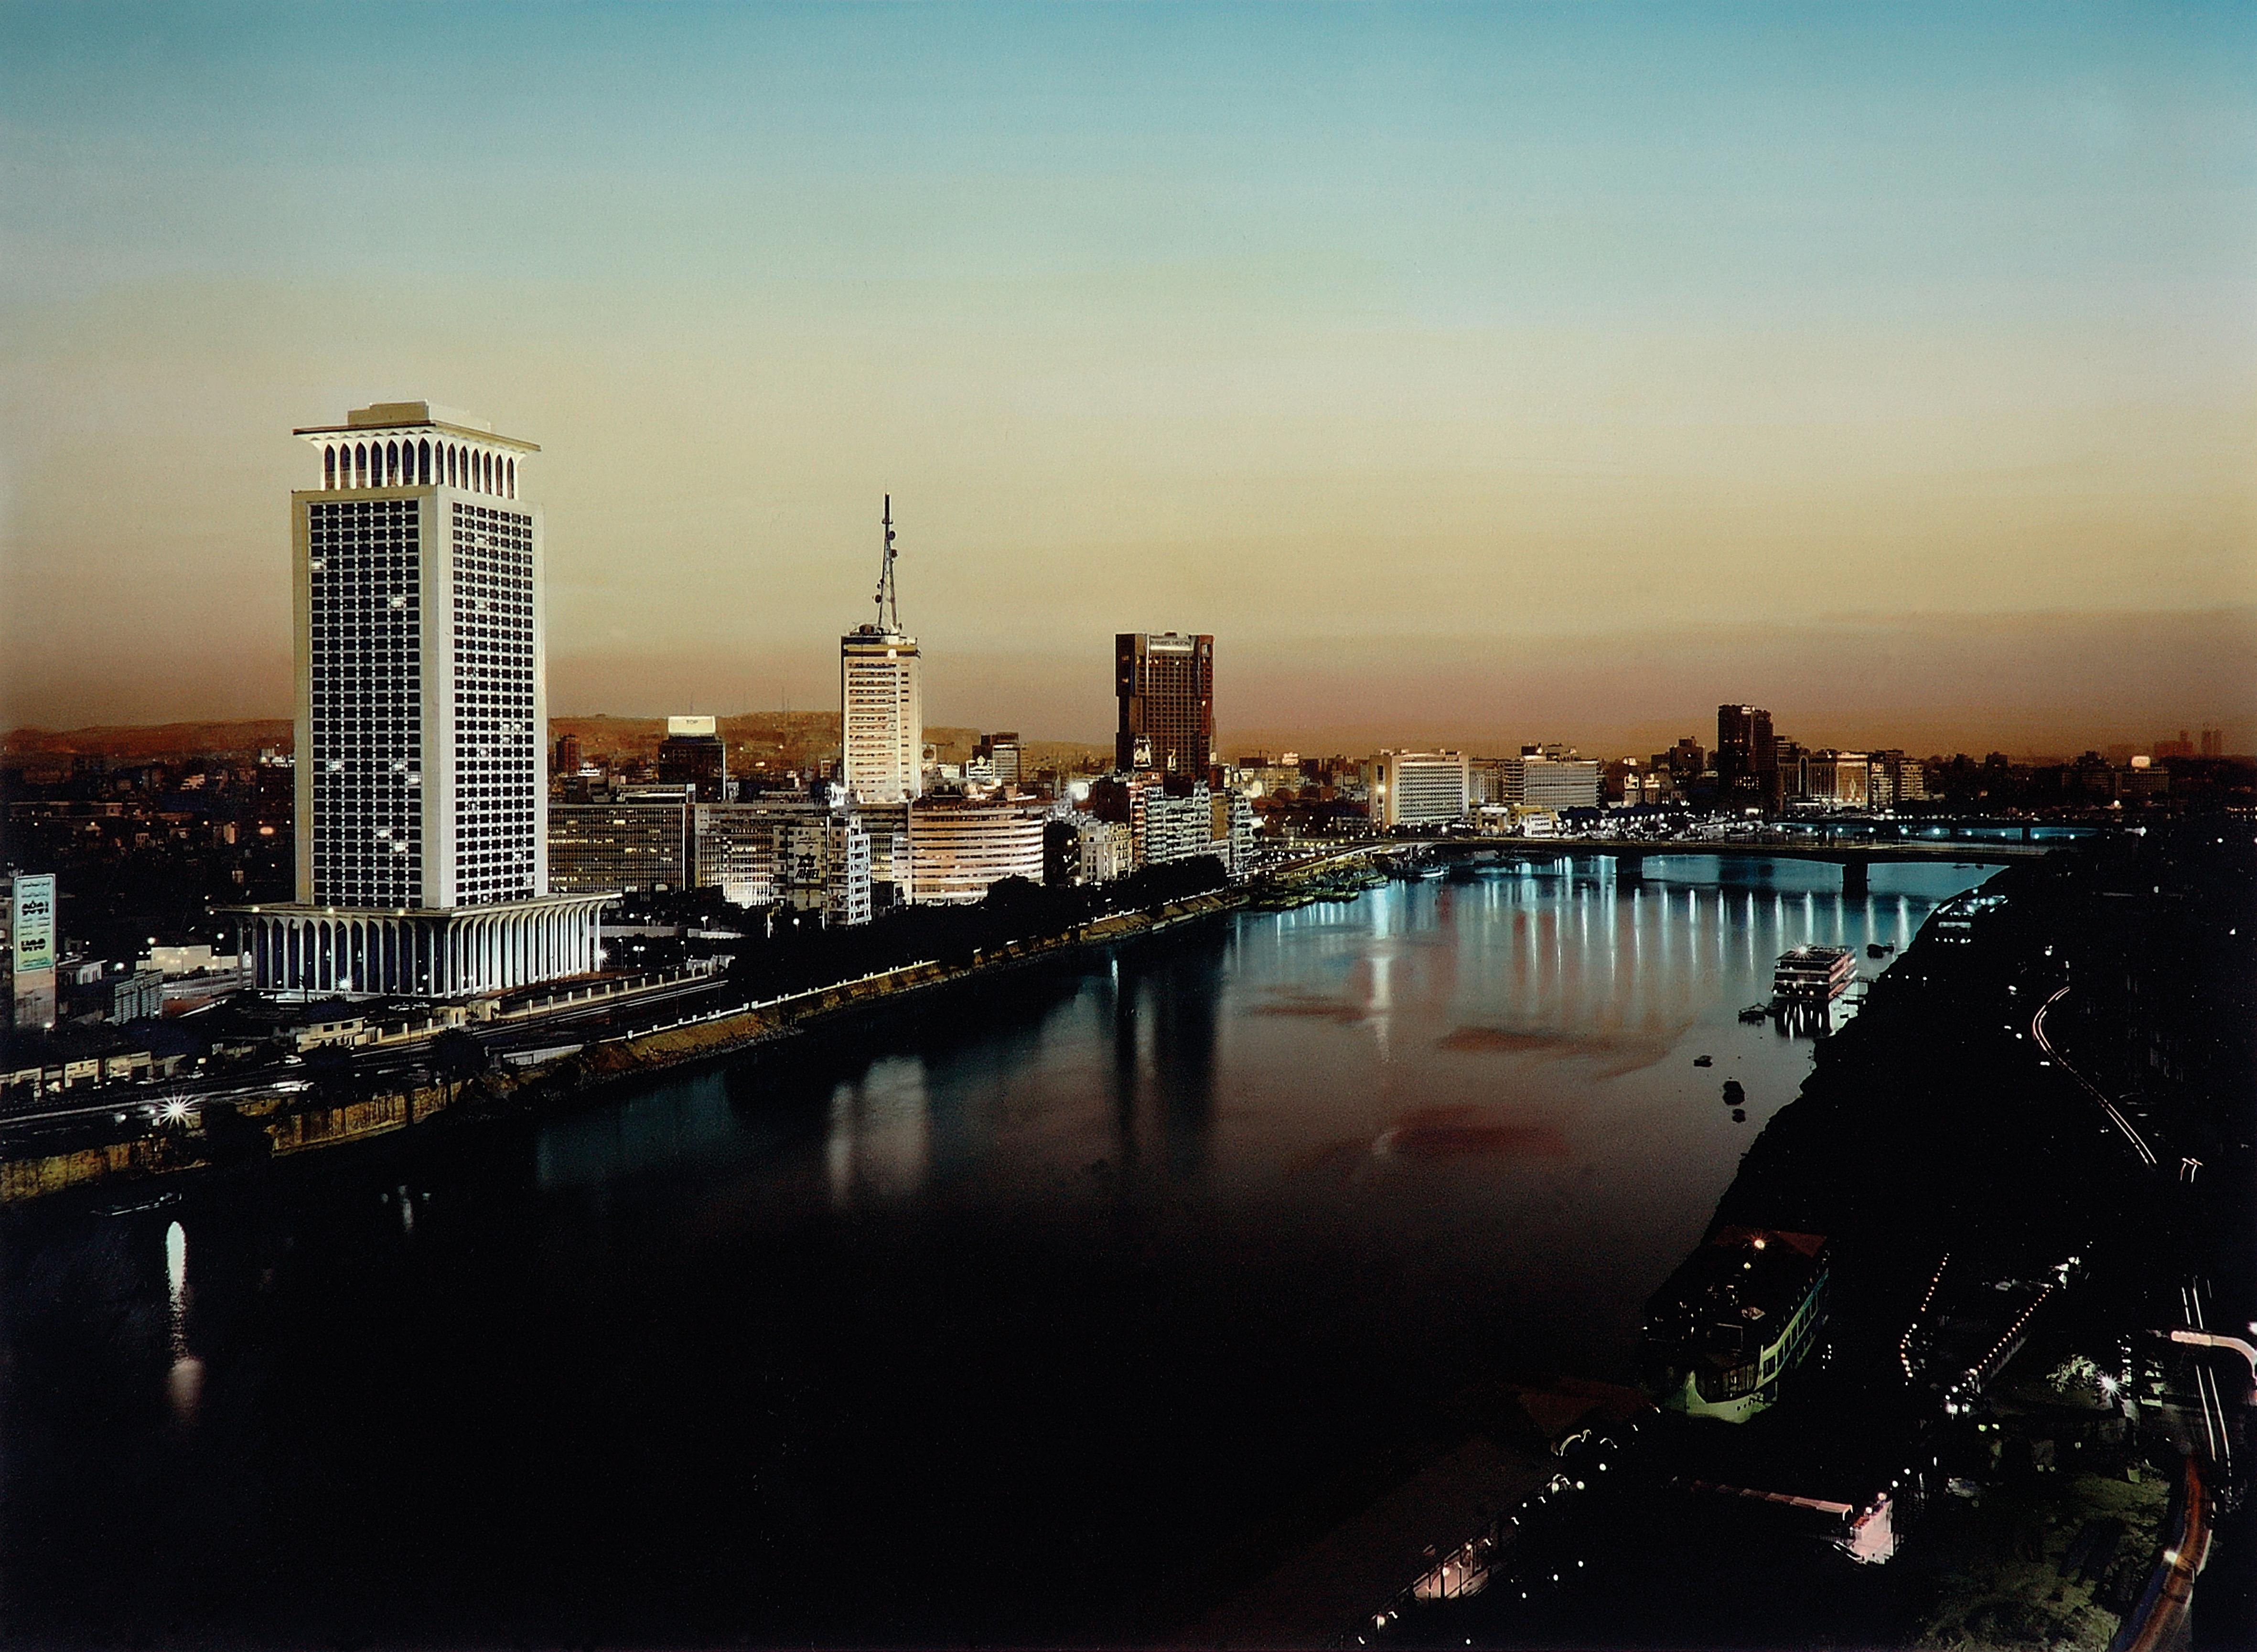 Cairo Nile at Night